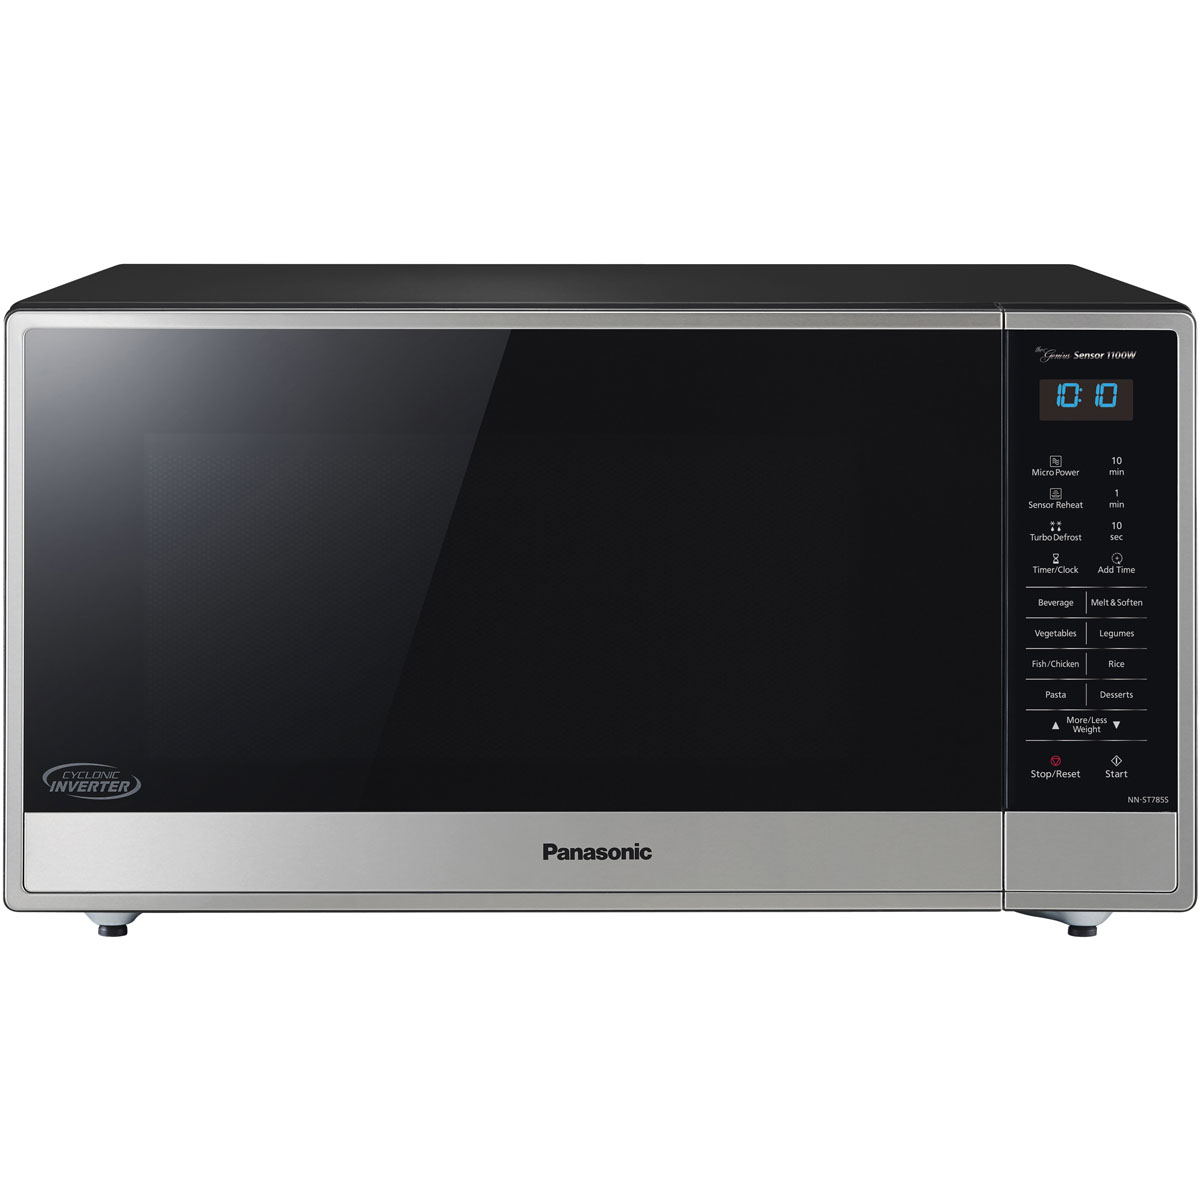 Panasonic Appliances Online Home Clearance